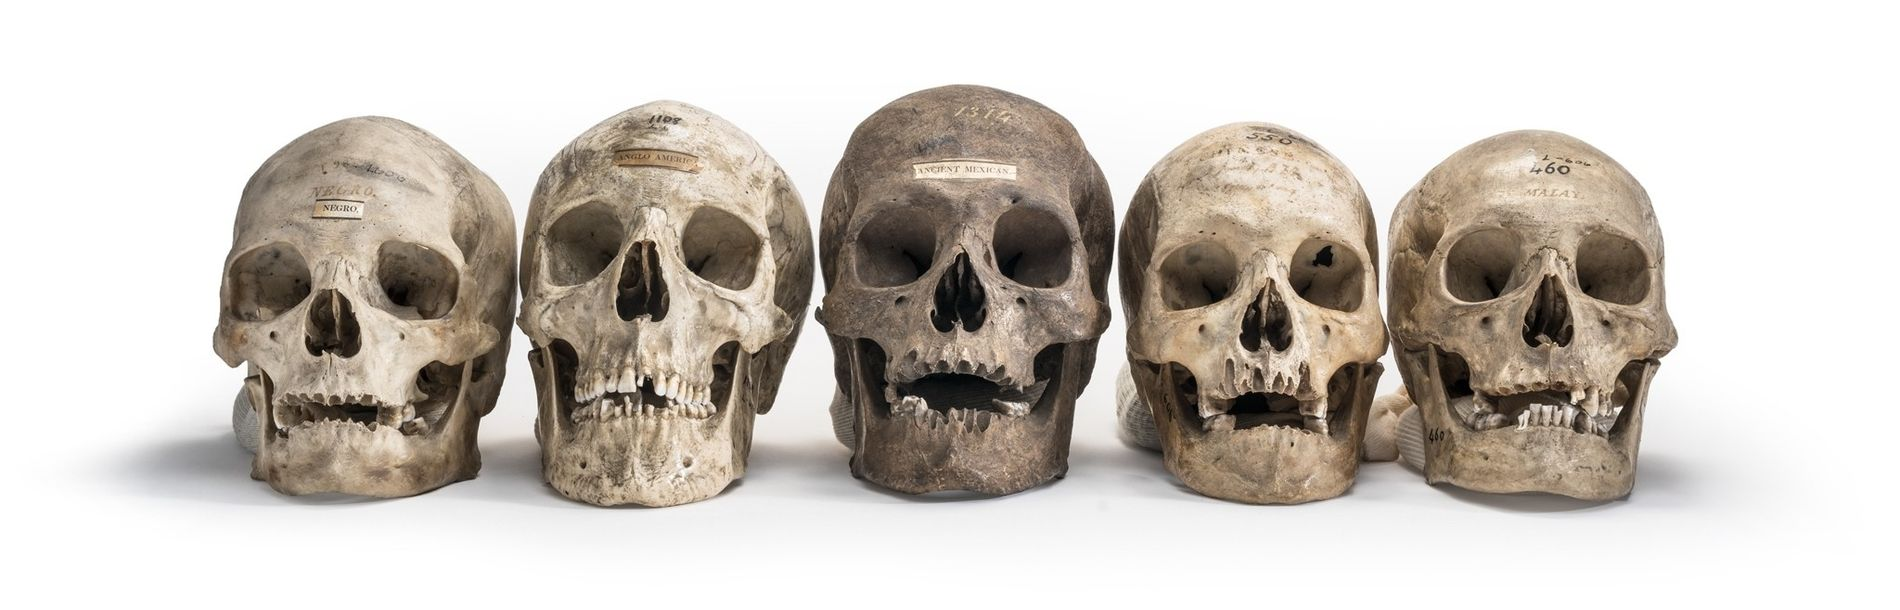 Skulls from the collection of Samuel Morton, the father of scientific racism, illustrate his classification of ...